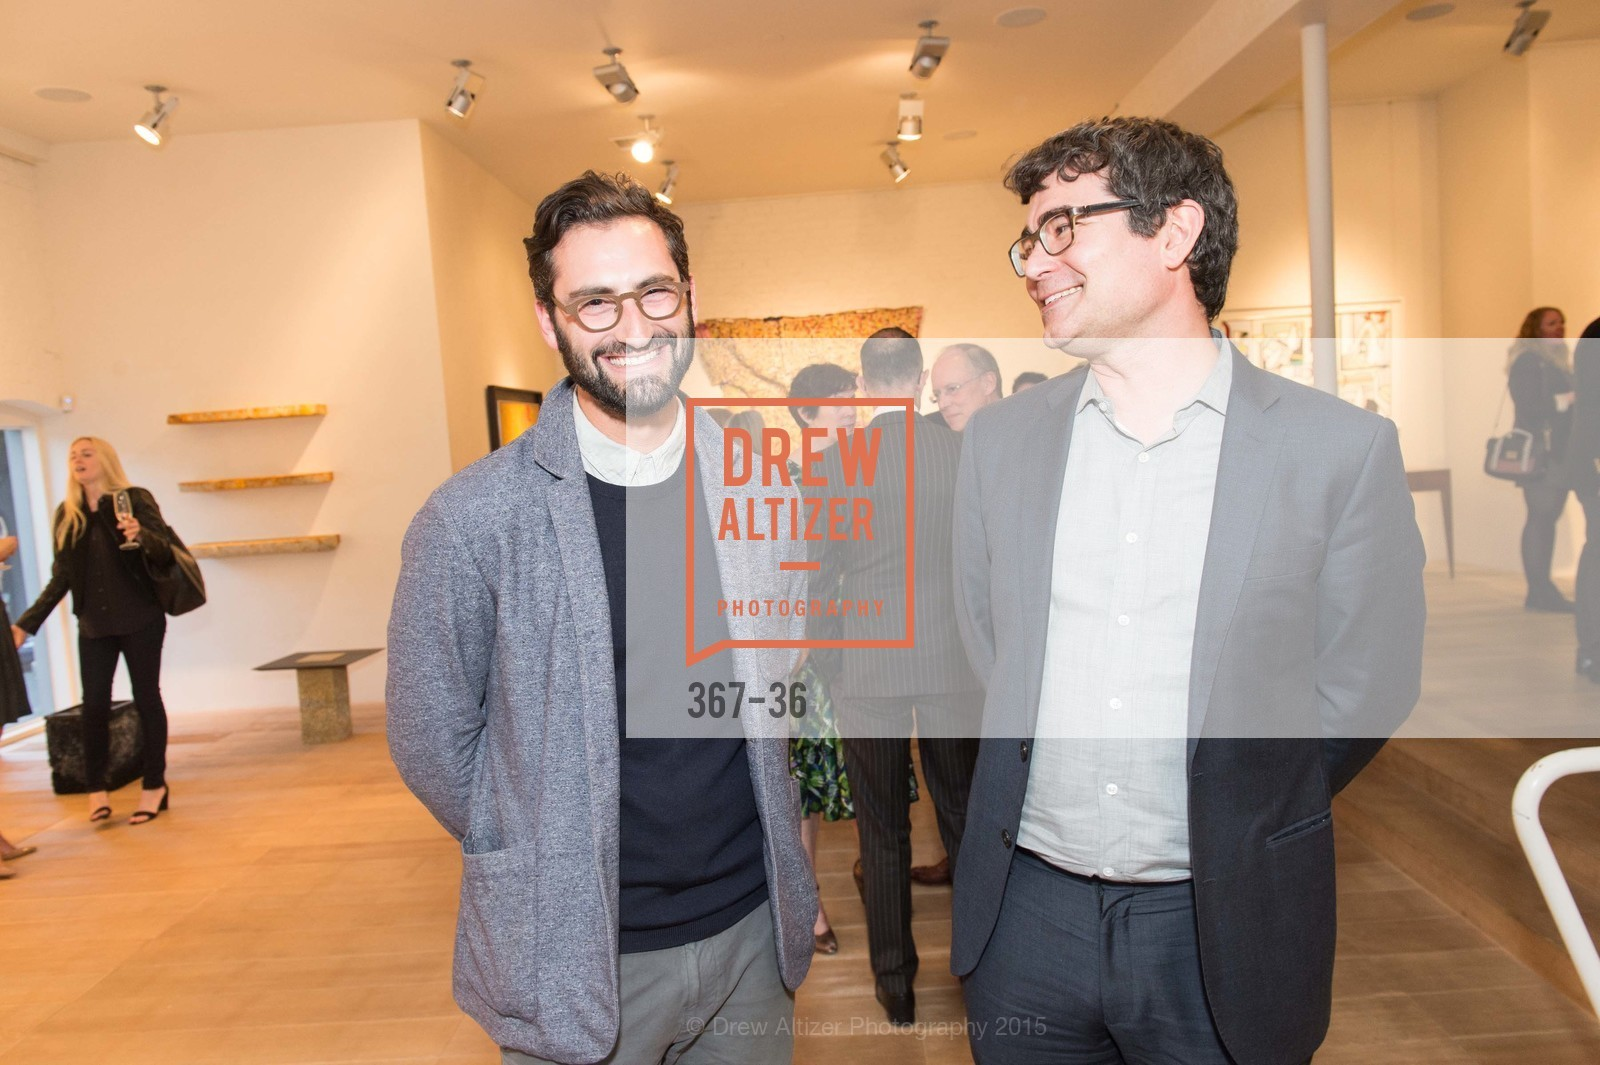 Joseph Becker, Alec Hathaway, Post War and Contemporary preview at Hedge Gallery , Hedge Gallery. 501 Pacific Ave, San Francisco, CA 94133, April 16th, 2015,Drew Altizer, Drew Altizer Photography, full-service agency, private events, San Francisco photographer, photographer california